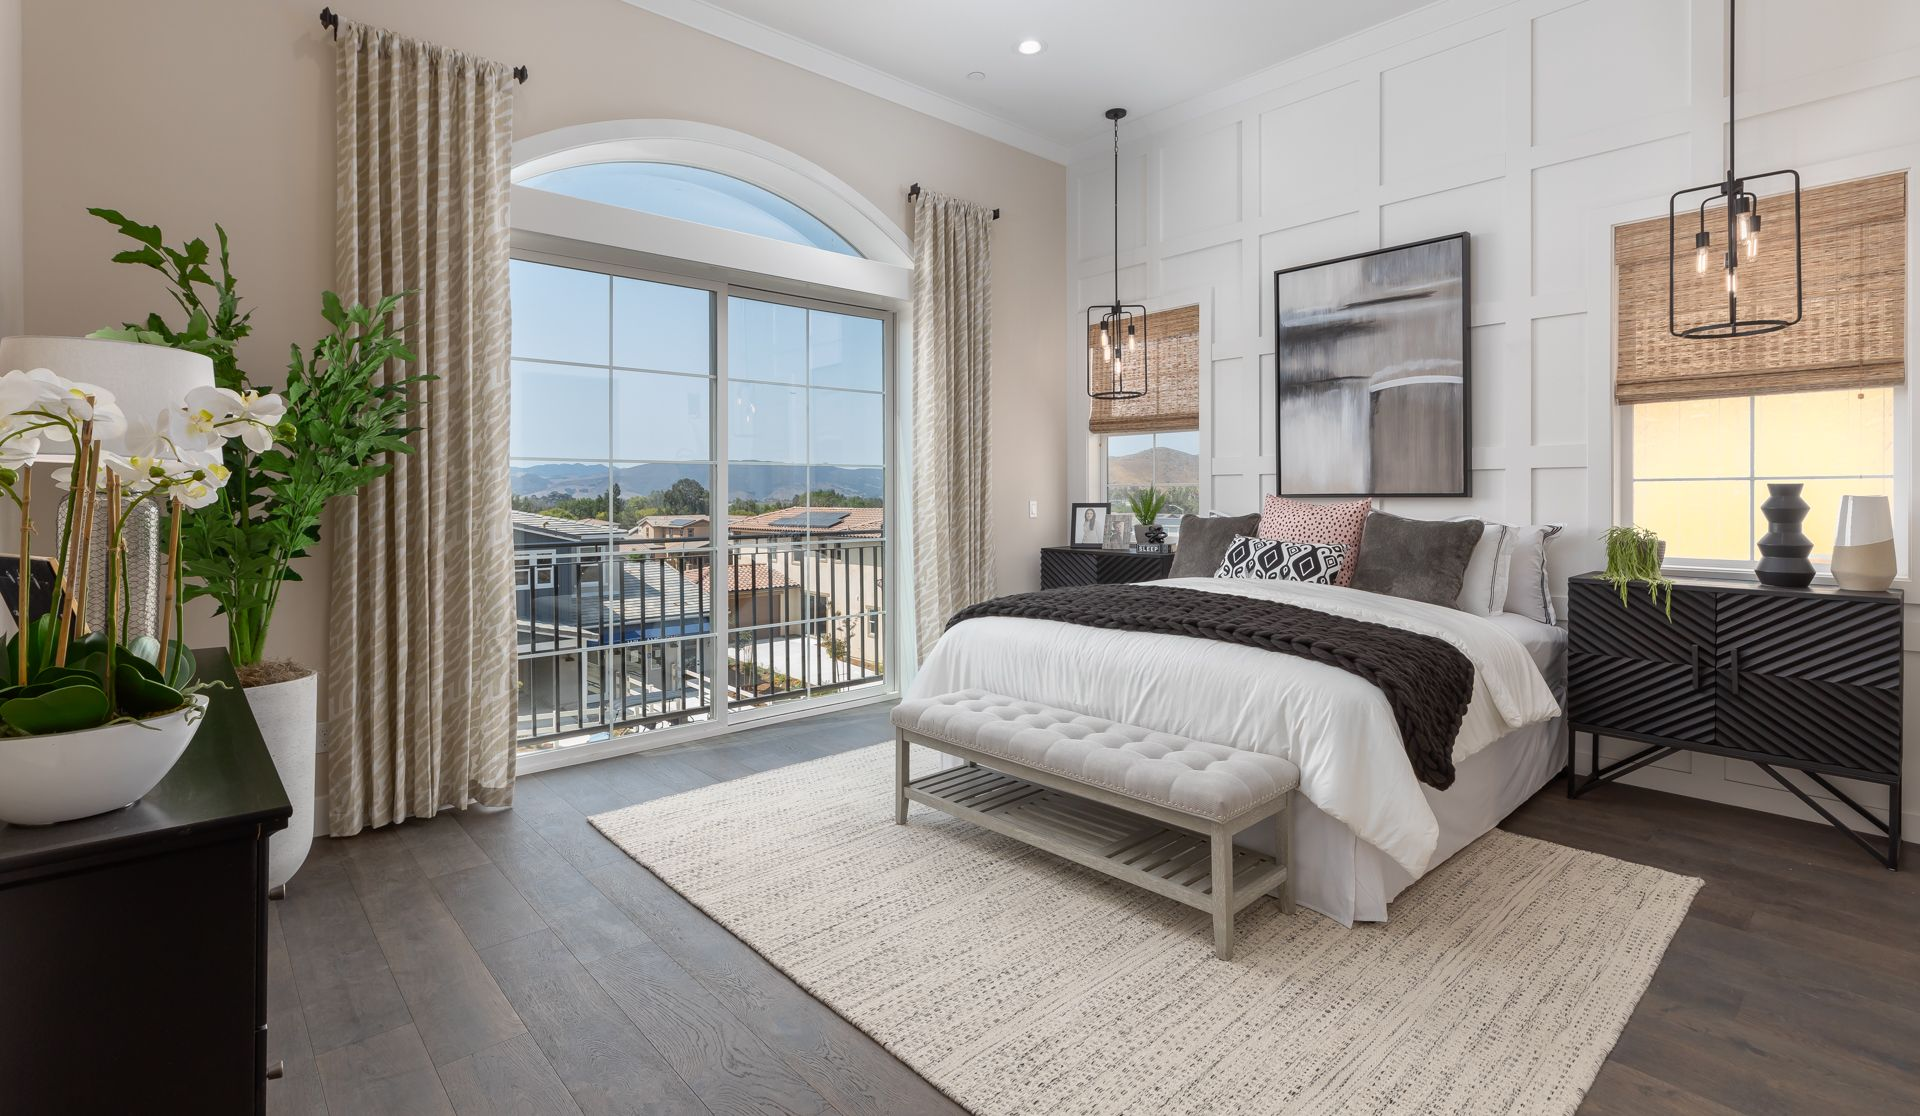 Bedroom featured in the Islay By Ladera at Righetti in San Luis Obispo, CA